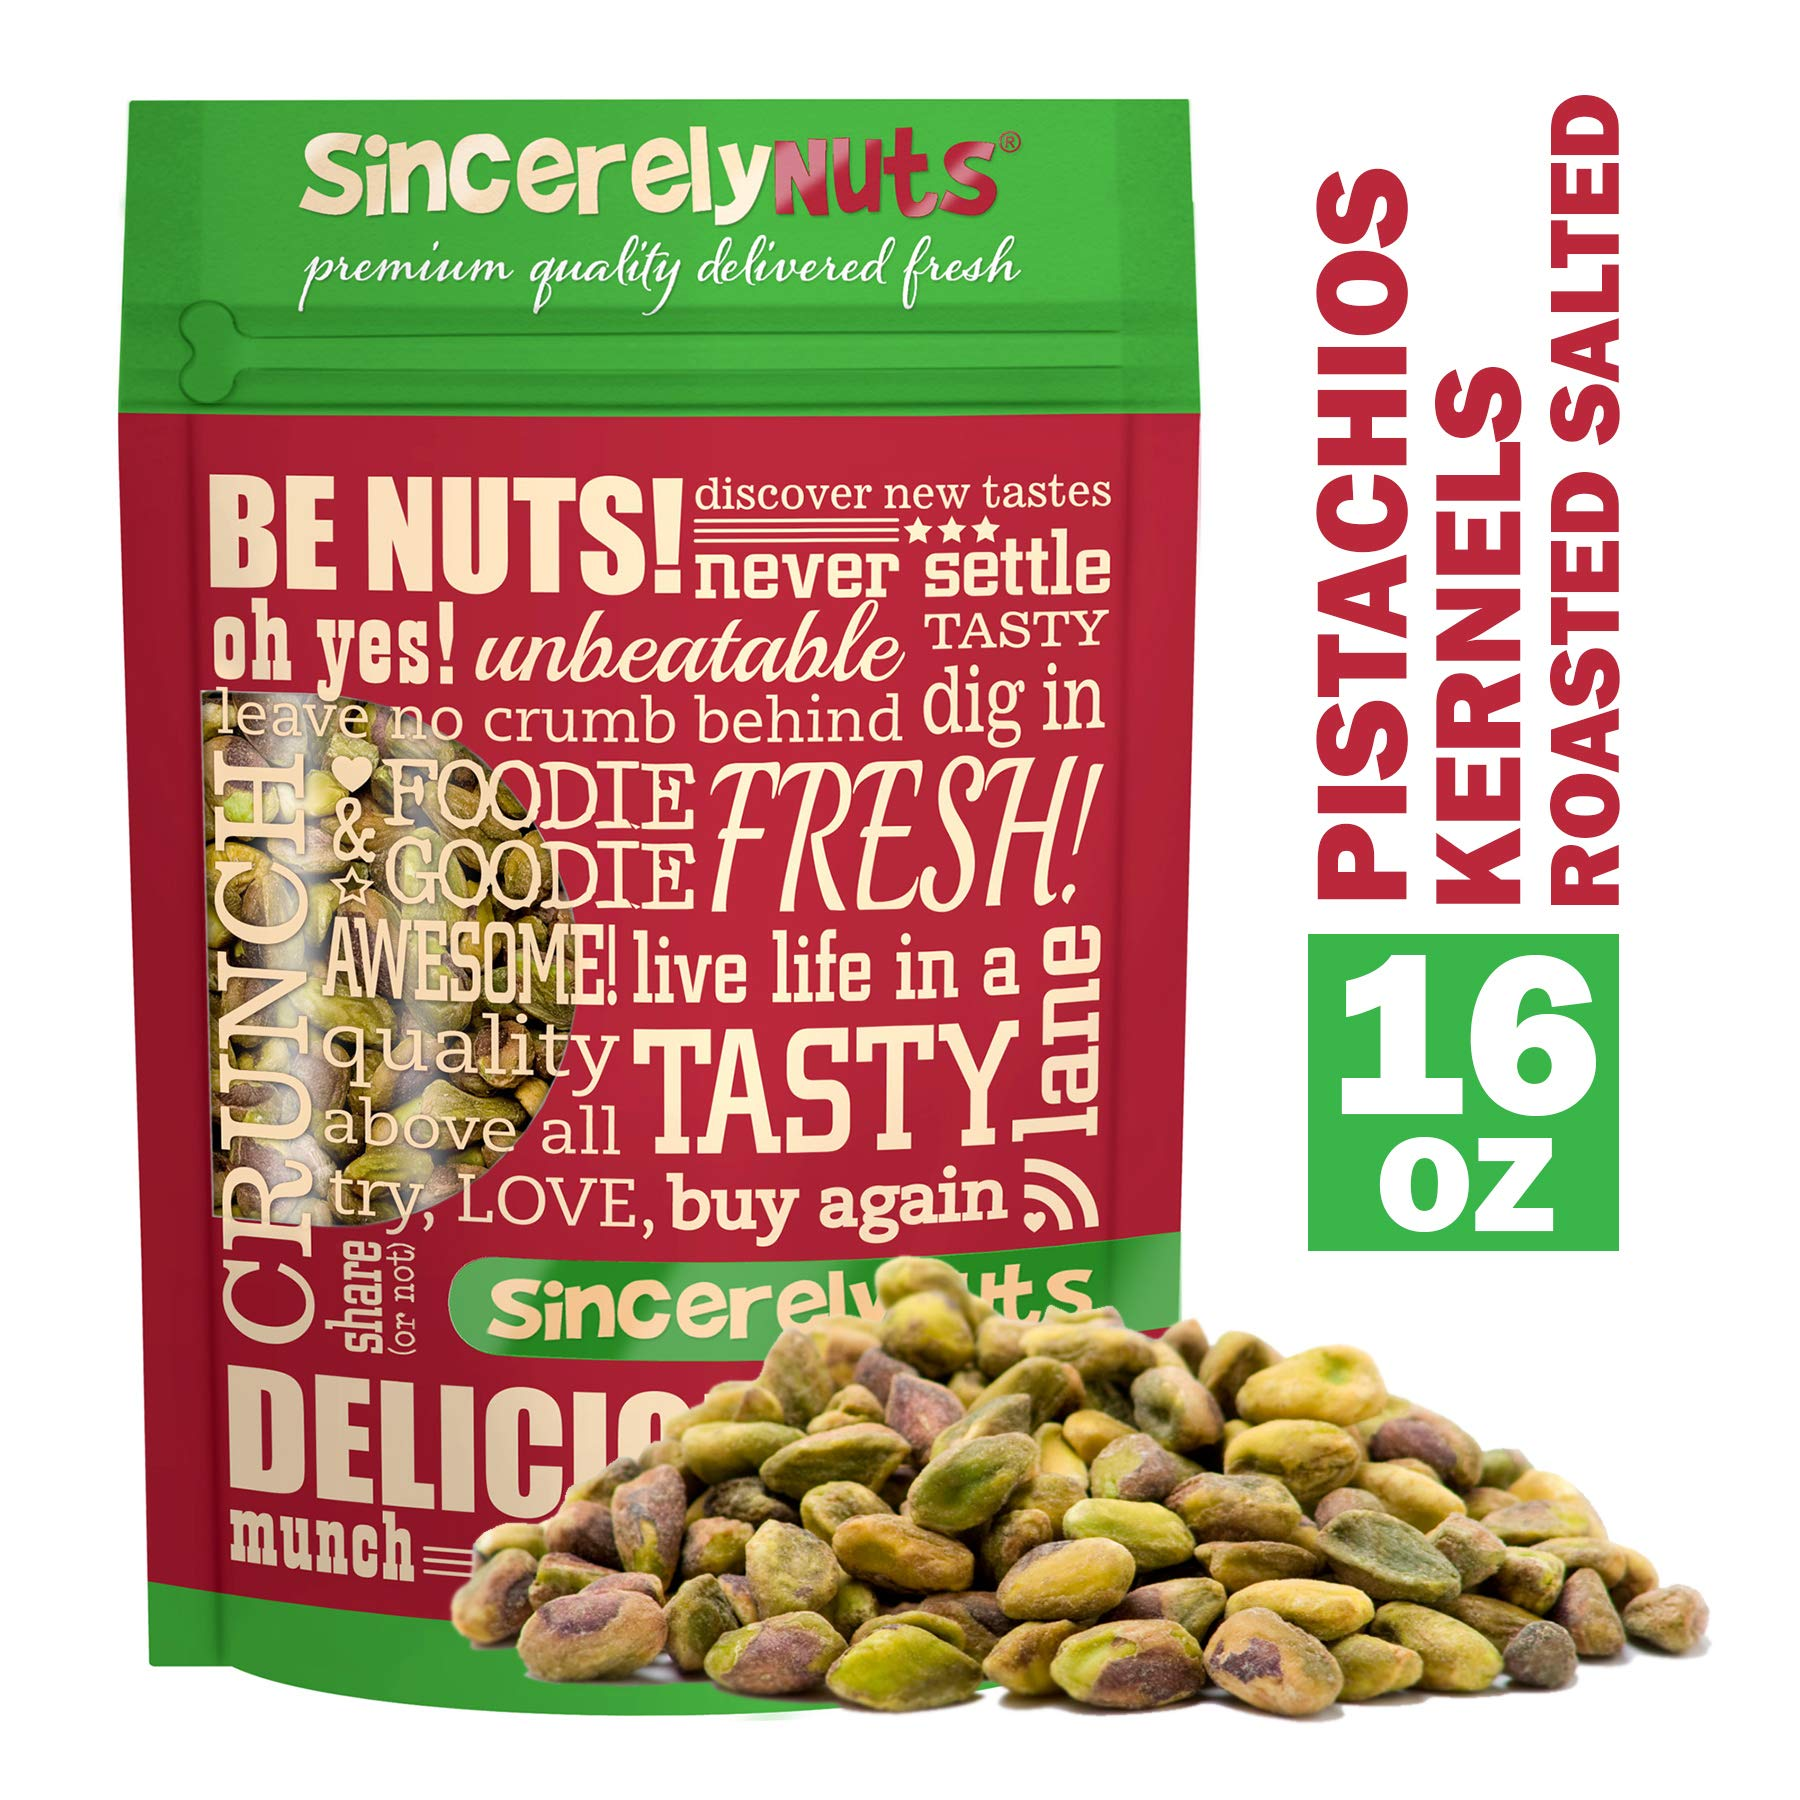 Sincerely Nuts Pistachios Roasted and Salted Kernels (Meats) No Shell - 1 Lb. Bag -   Healthy Snack Food   Great for Cooking   Source of Fiber & Protein   Gourmet Flavor   Vegan, Kosher & Gluten Free by Sincerely Nuts